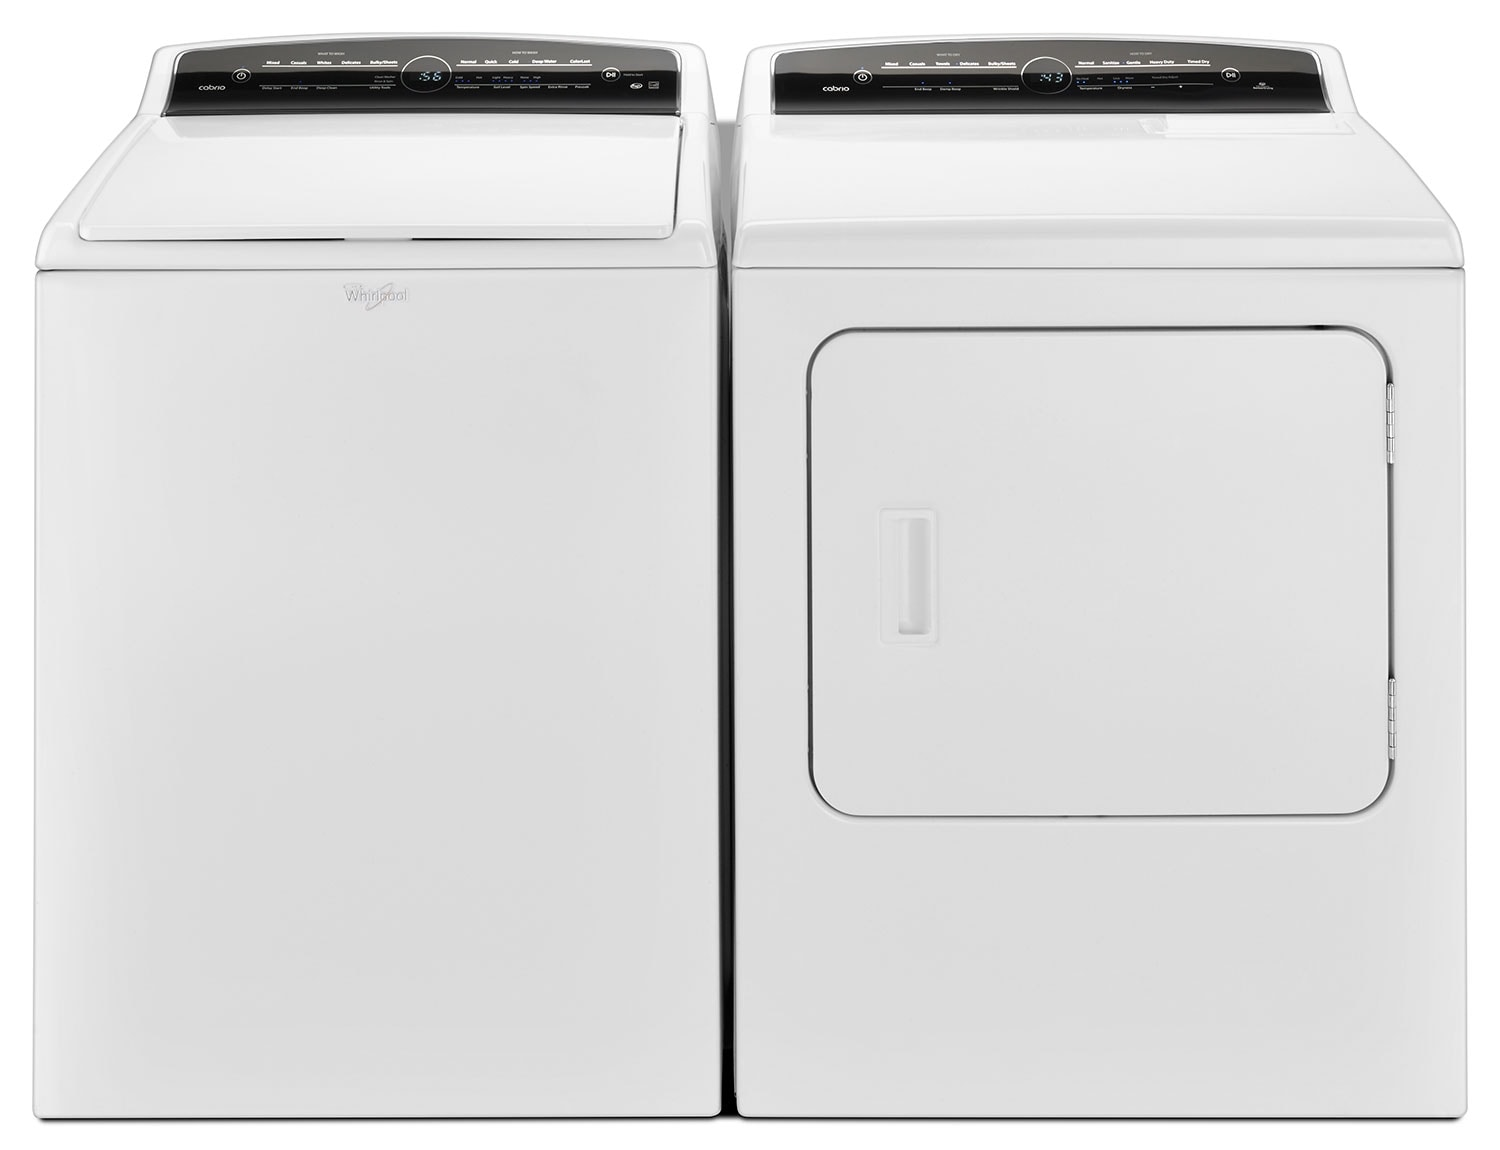 Whirlpool® Cabrio® 5.5 Cu. Ft. Top-Load Washer and 7.0 Cu. Ft. Electric Dryer - White